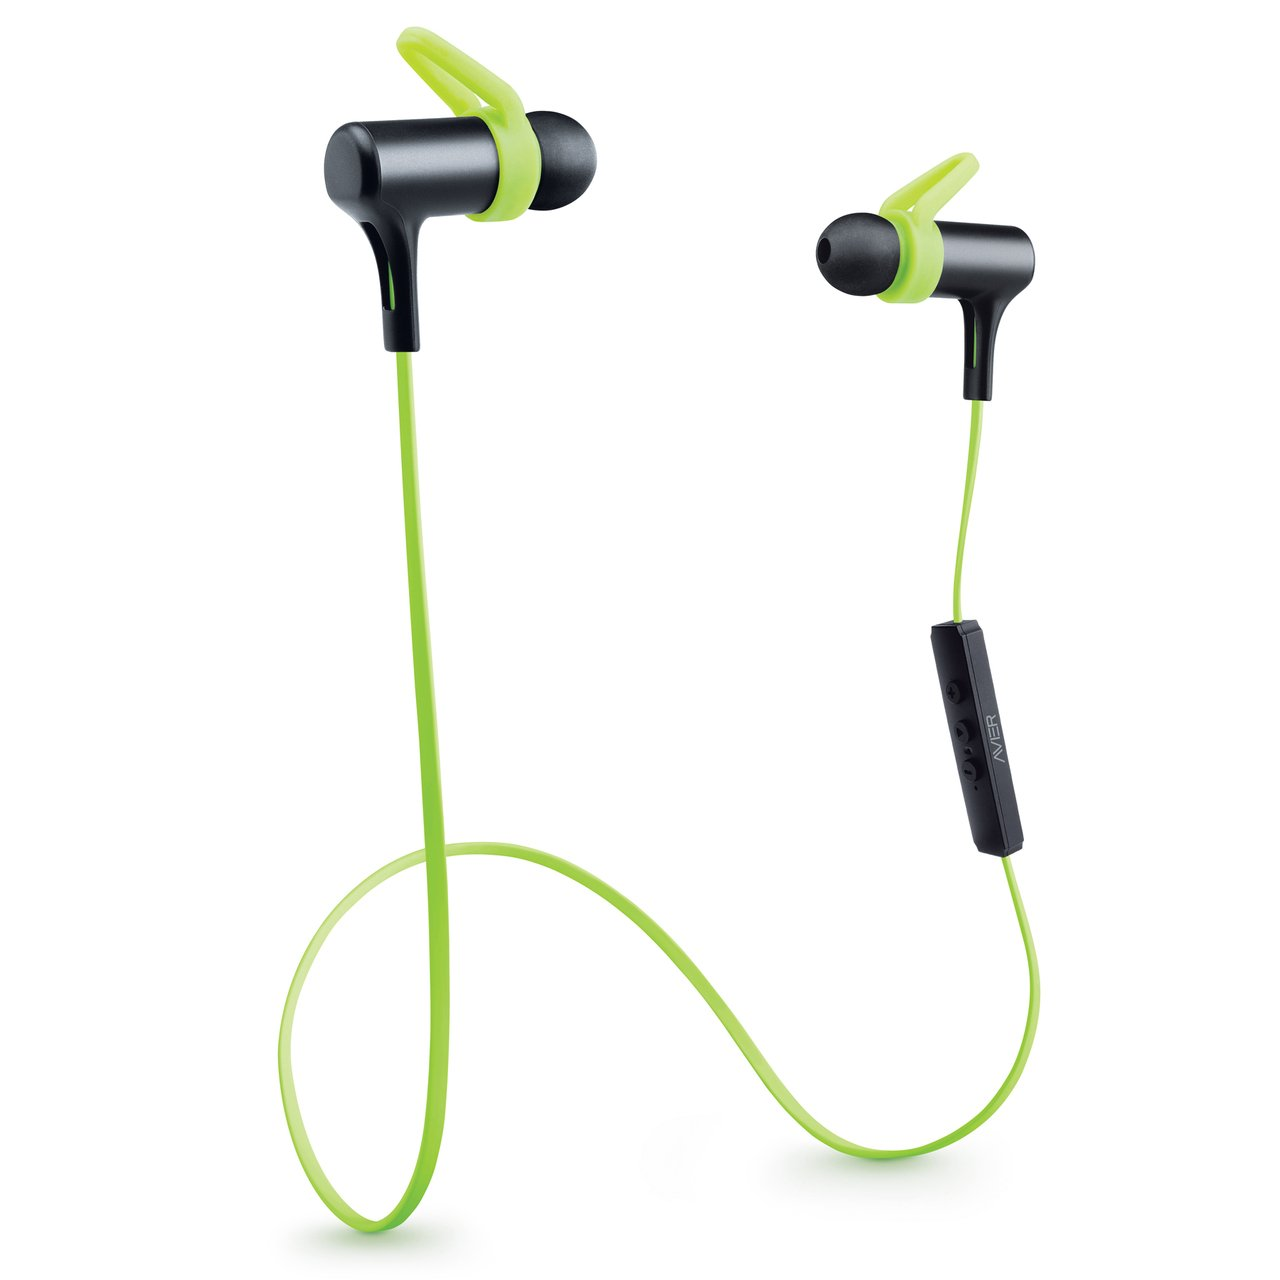 Avier XE3 Wireless Bluetooth 4.0 Sport Earbuds for Running, Exercise, Gym, Workouts. Sweat-proof Bluetooth Earbuds with Built-in Microphone, Playback Controls, and 6 Hour Battery. top mini sport bluetooth earphone for meizu m3 note earbuds headsets with microphone wireless earphones